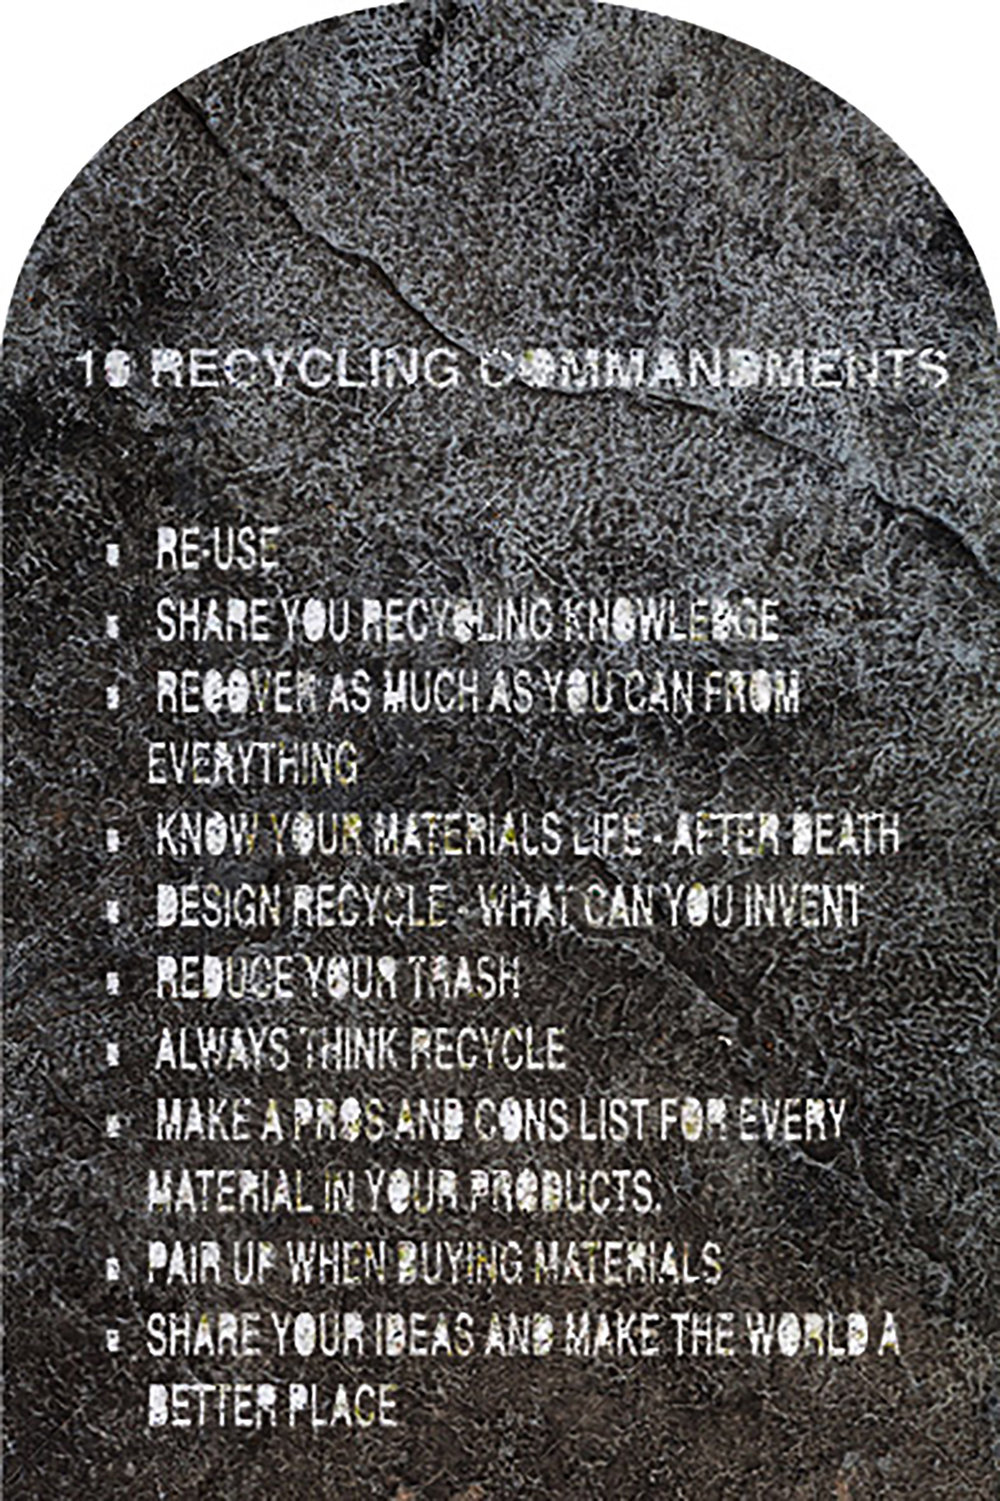 10 RECYCLING COMMANDMENTS.jpg